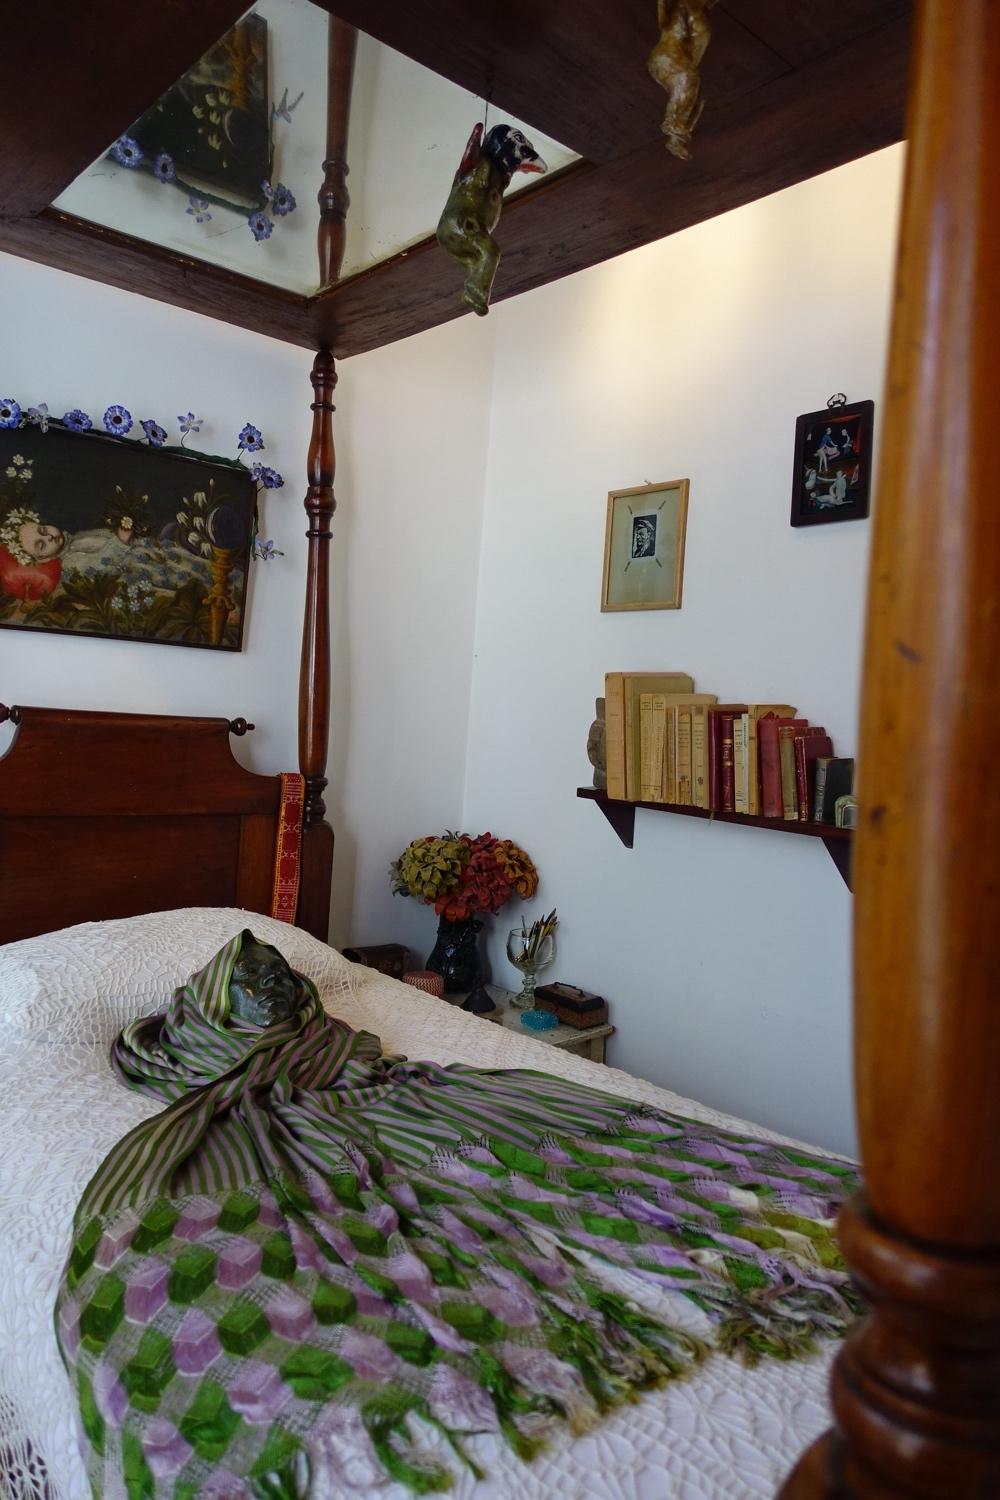 Bedroom of Frido Kahlo